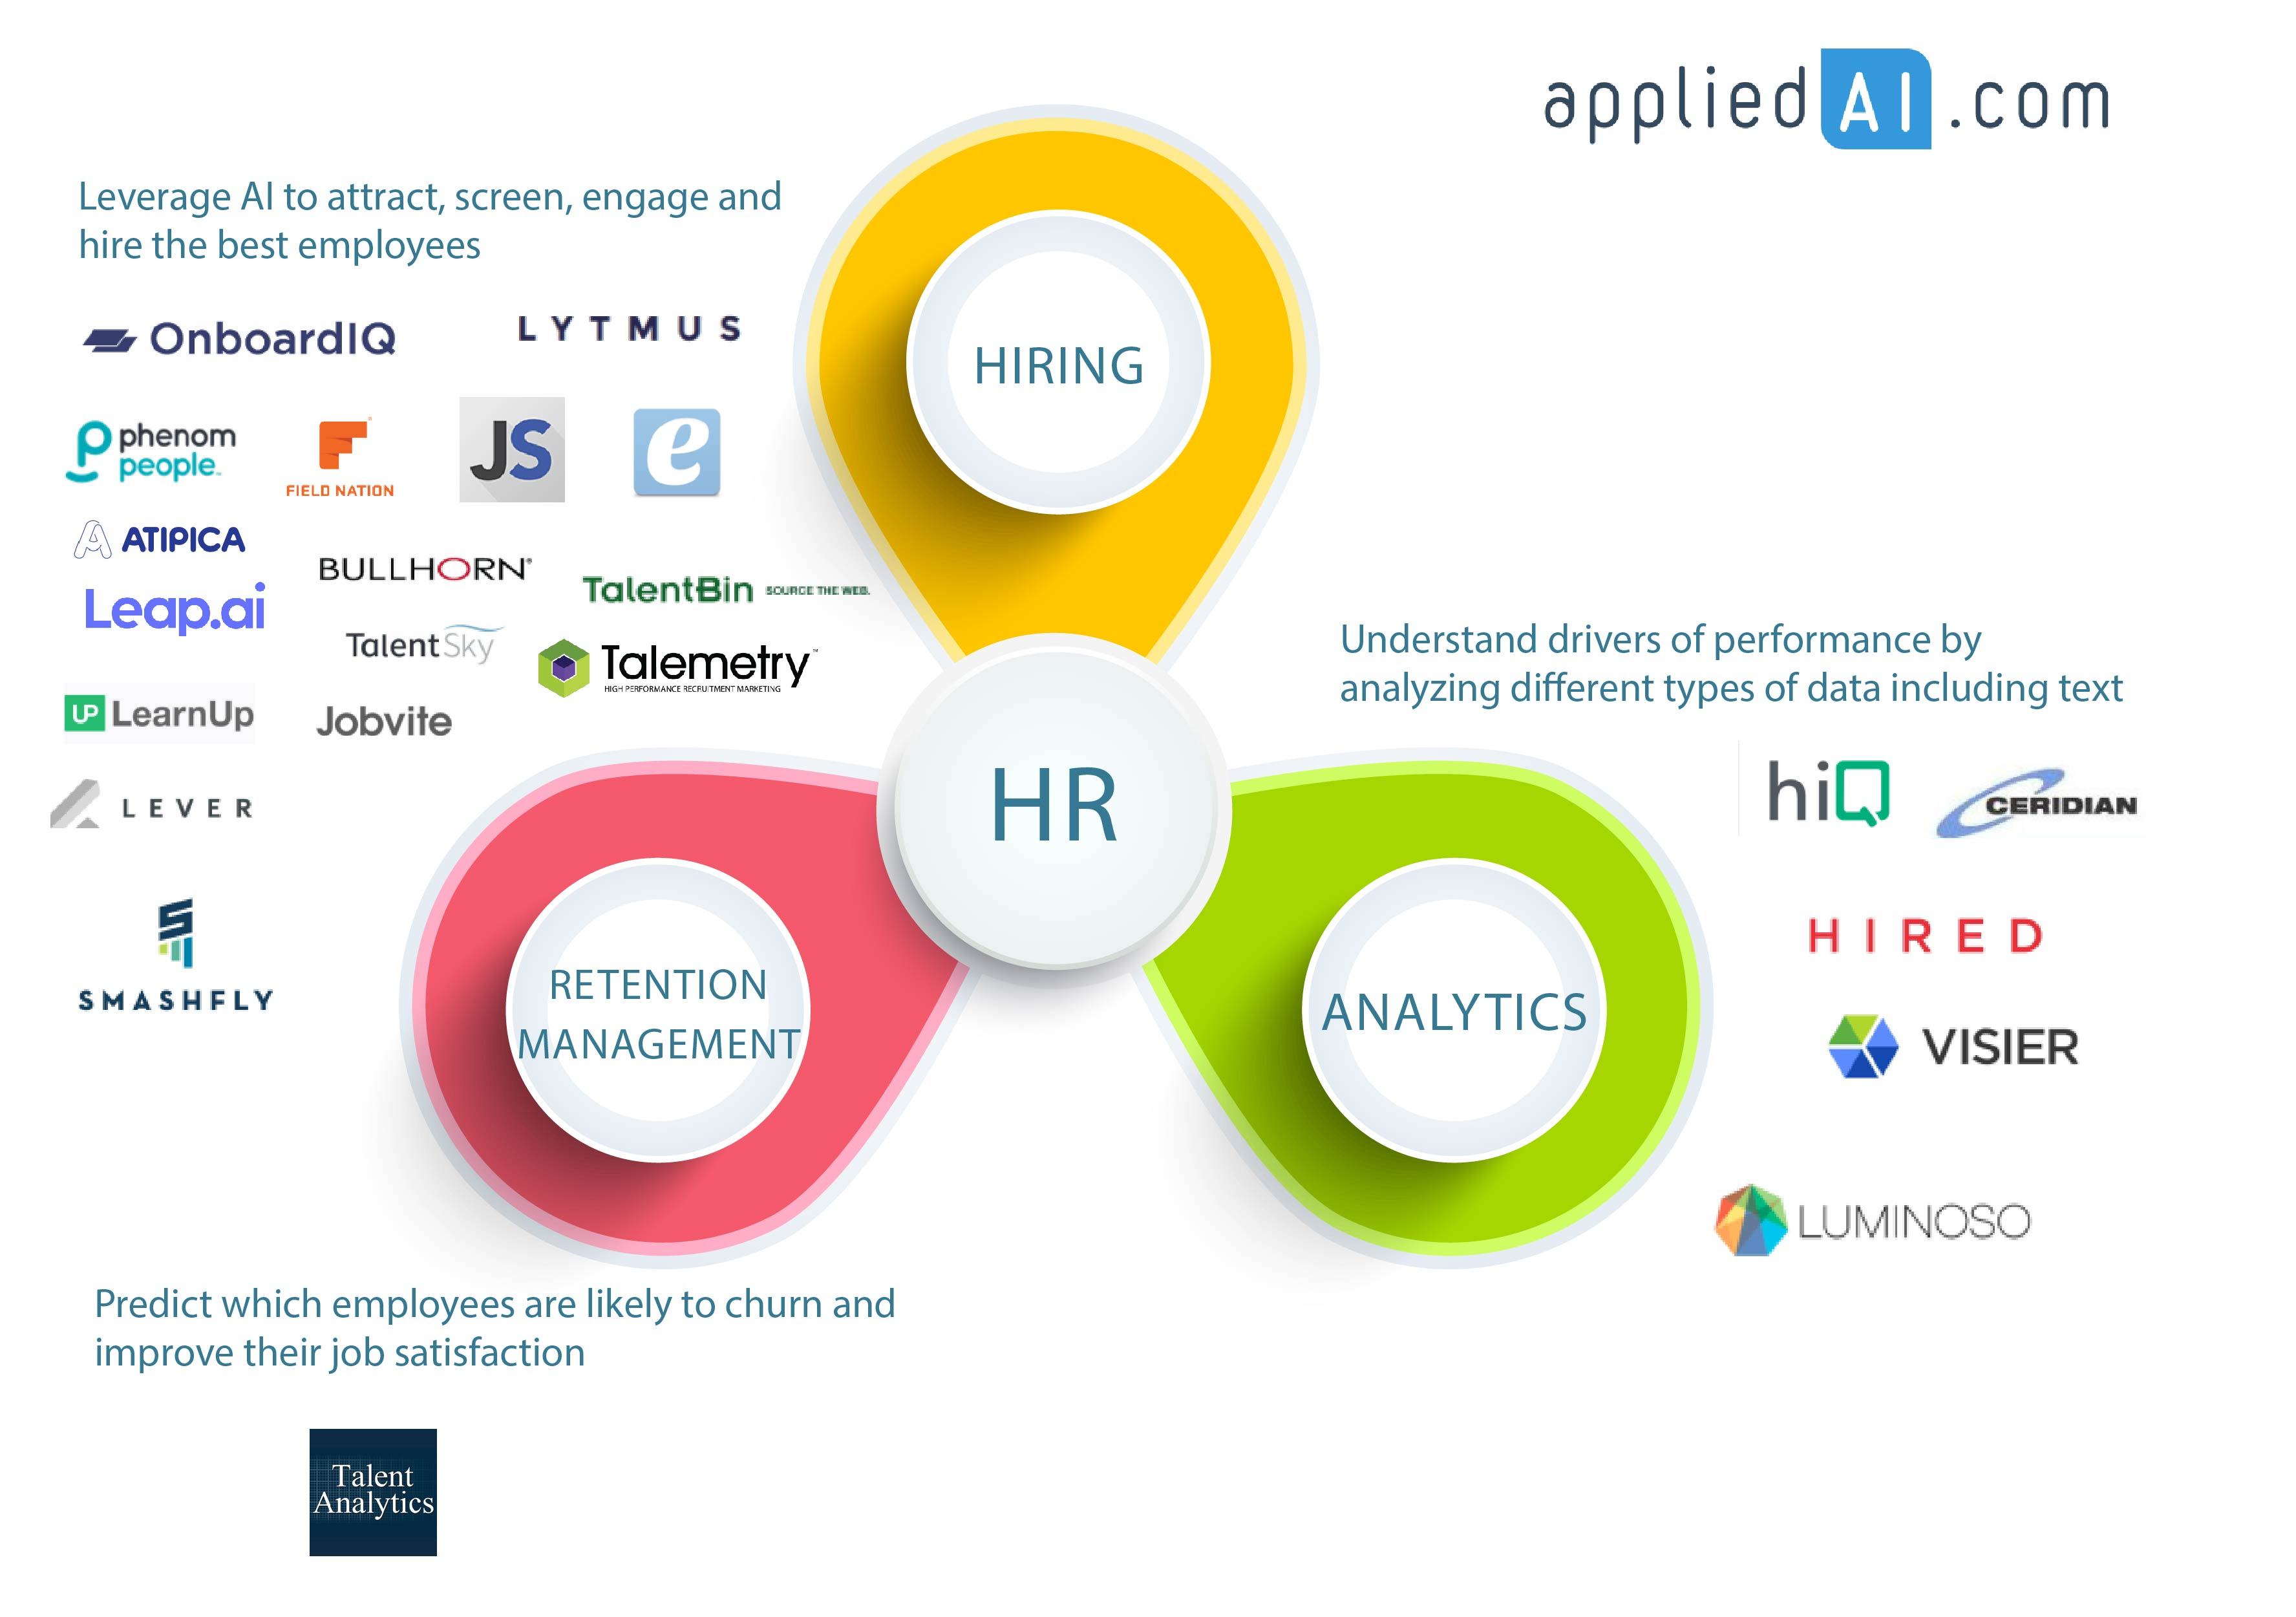 AI is used in hiring, analytics and churn management in HR